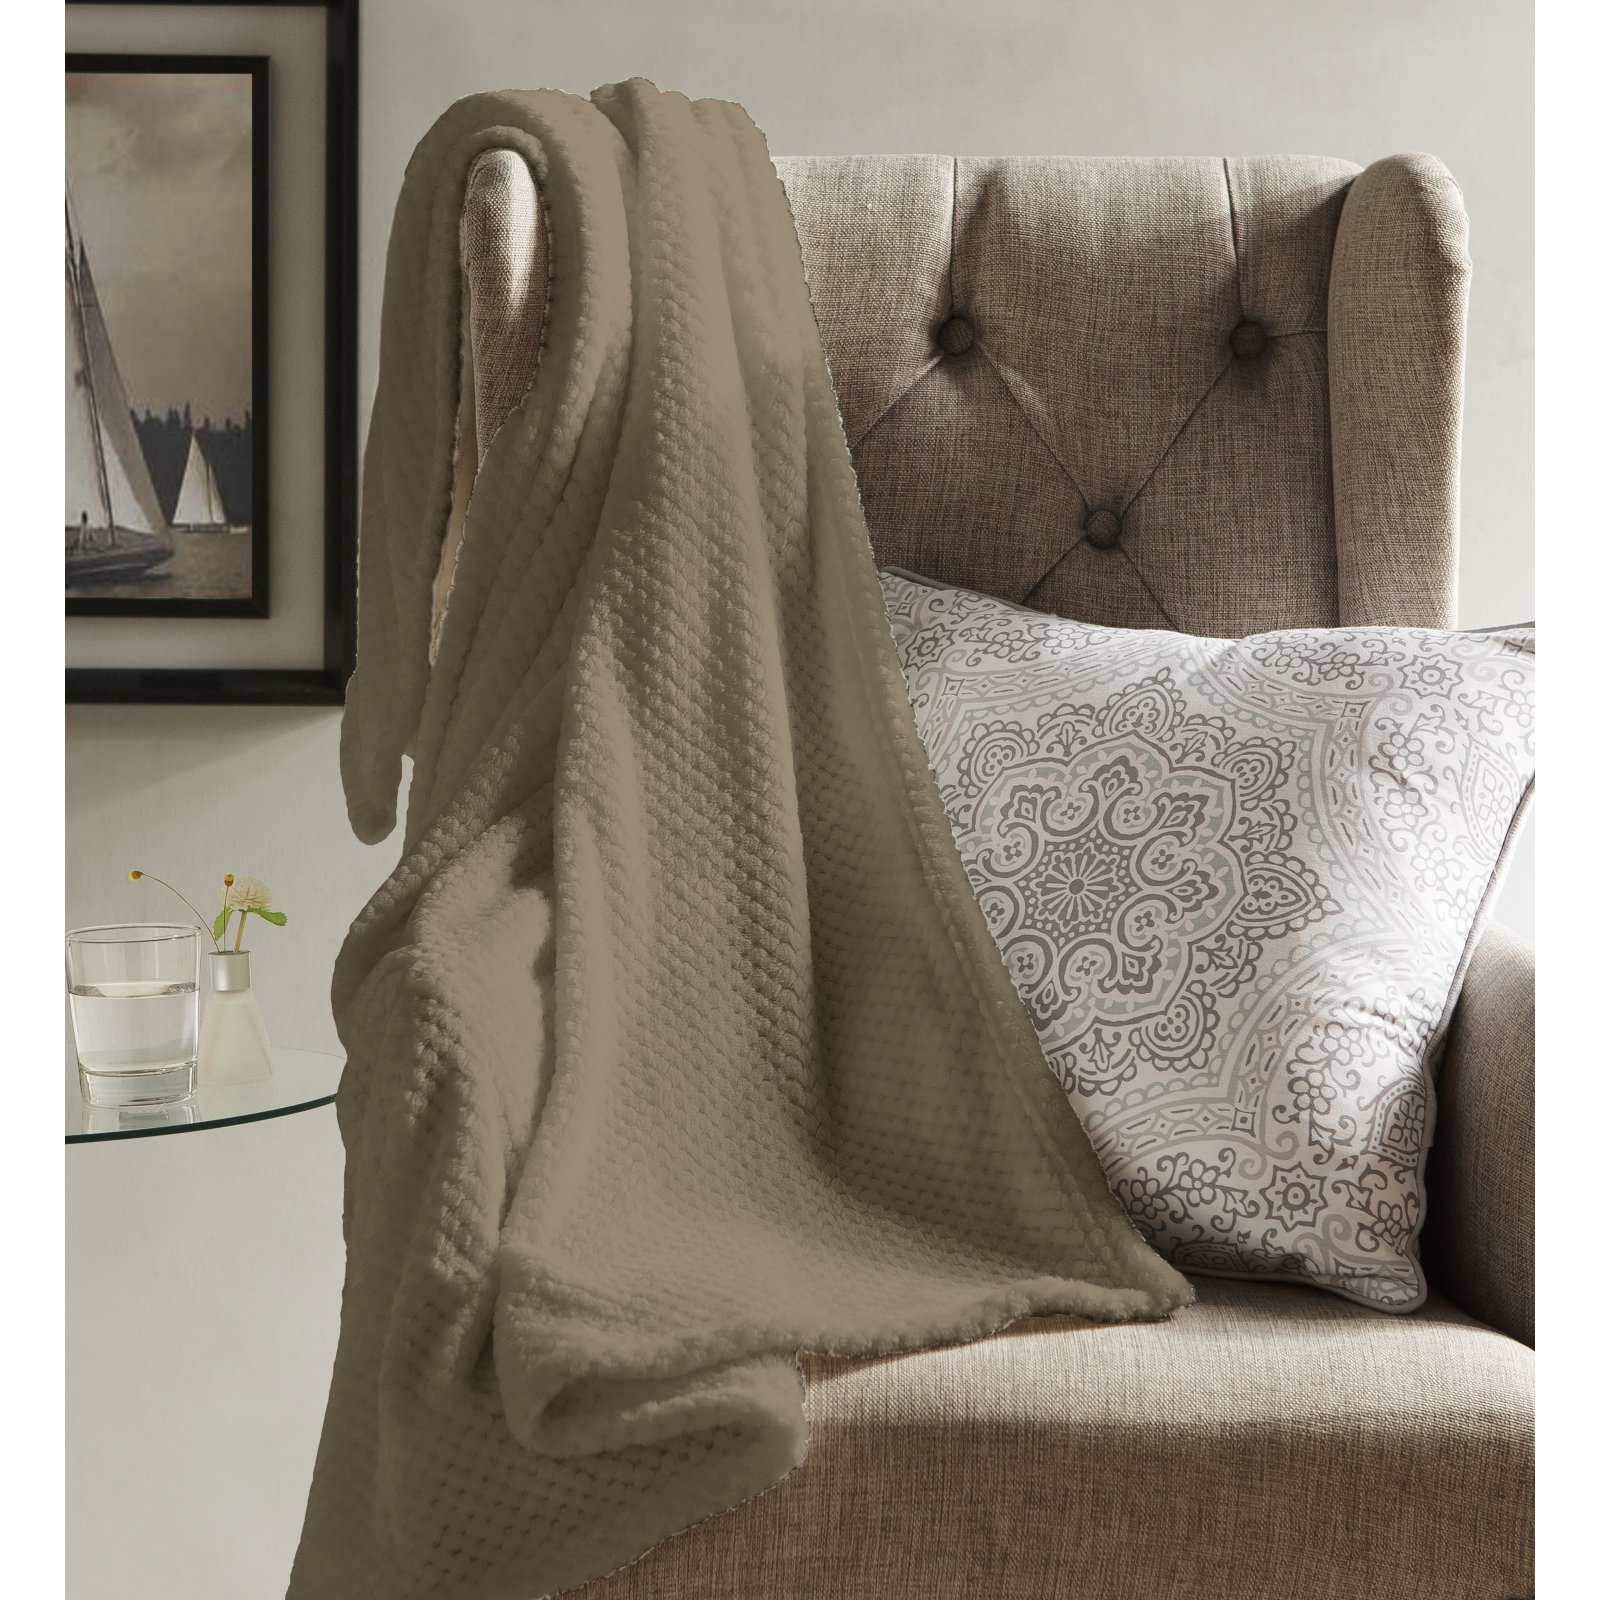 Kensie & Myrcella Fleece Sherpa Throw Blanket